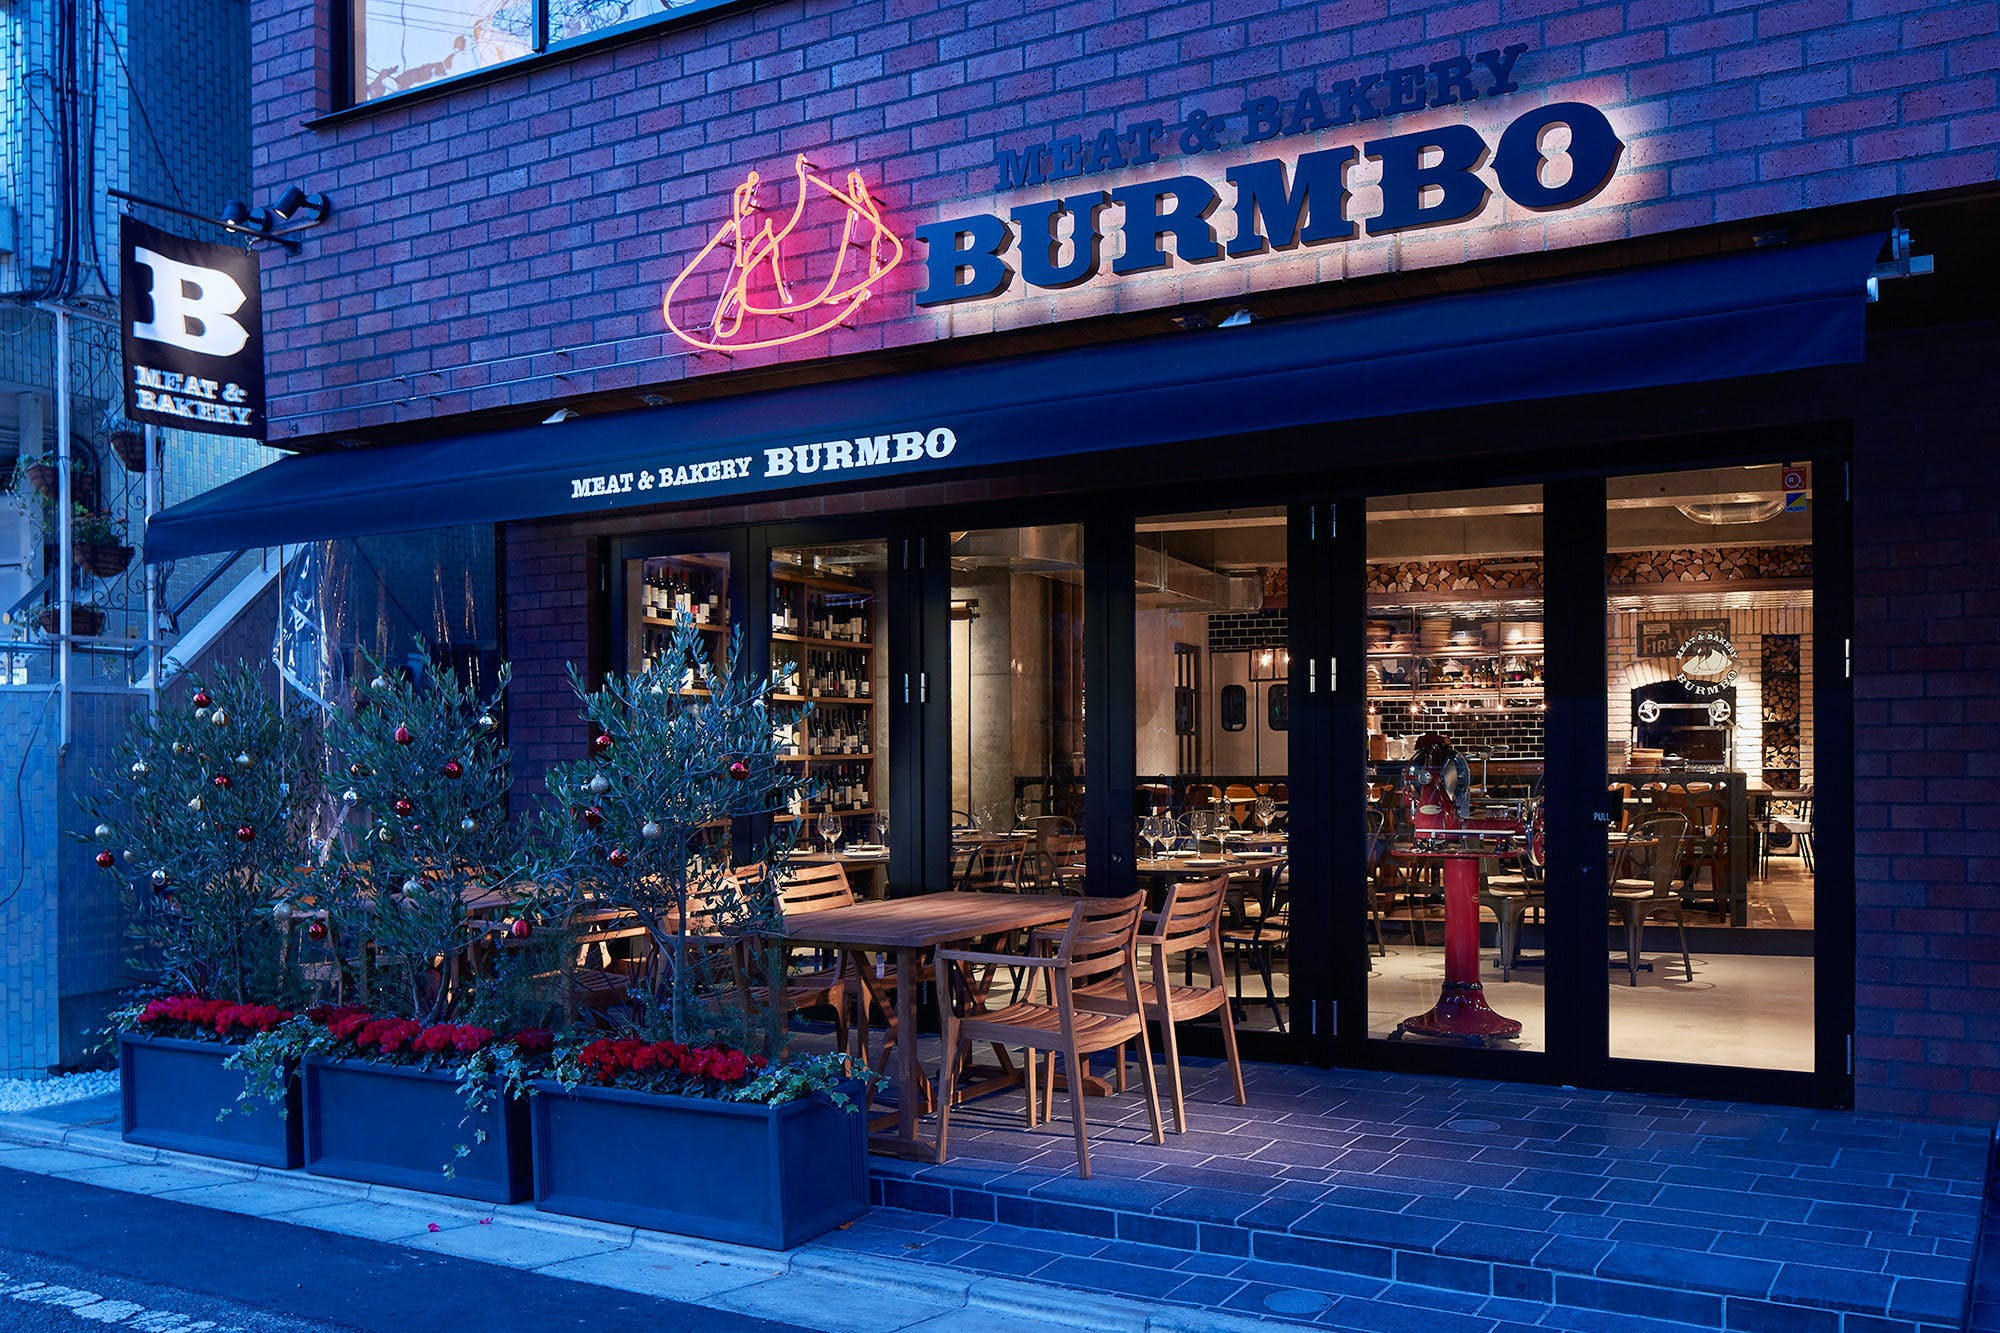 MEAT&BAKERY BURMBO